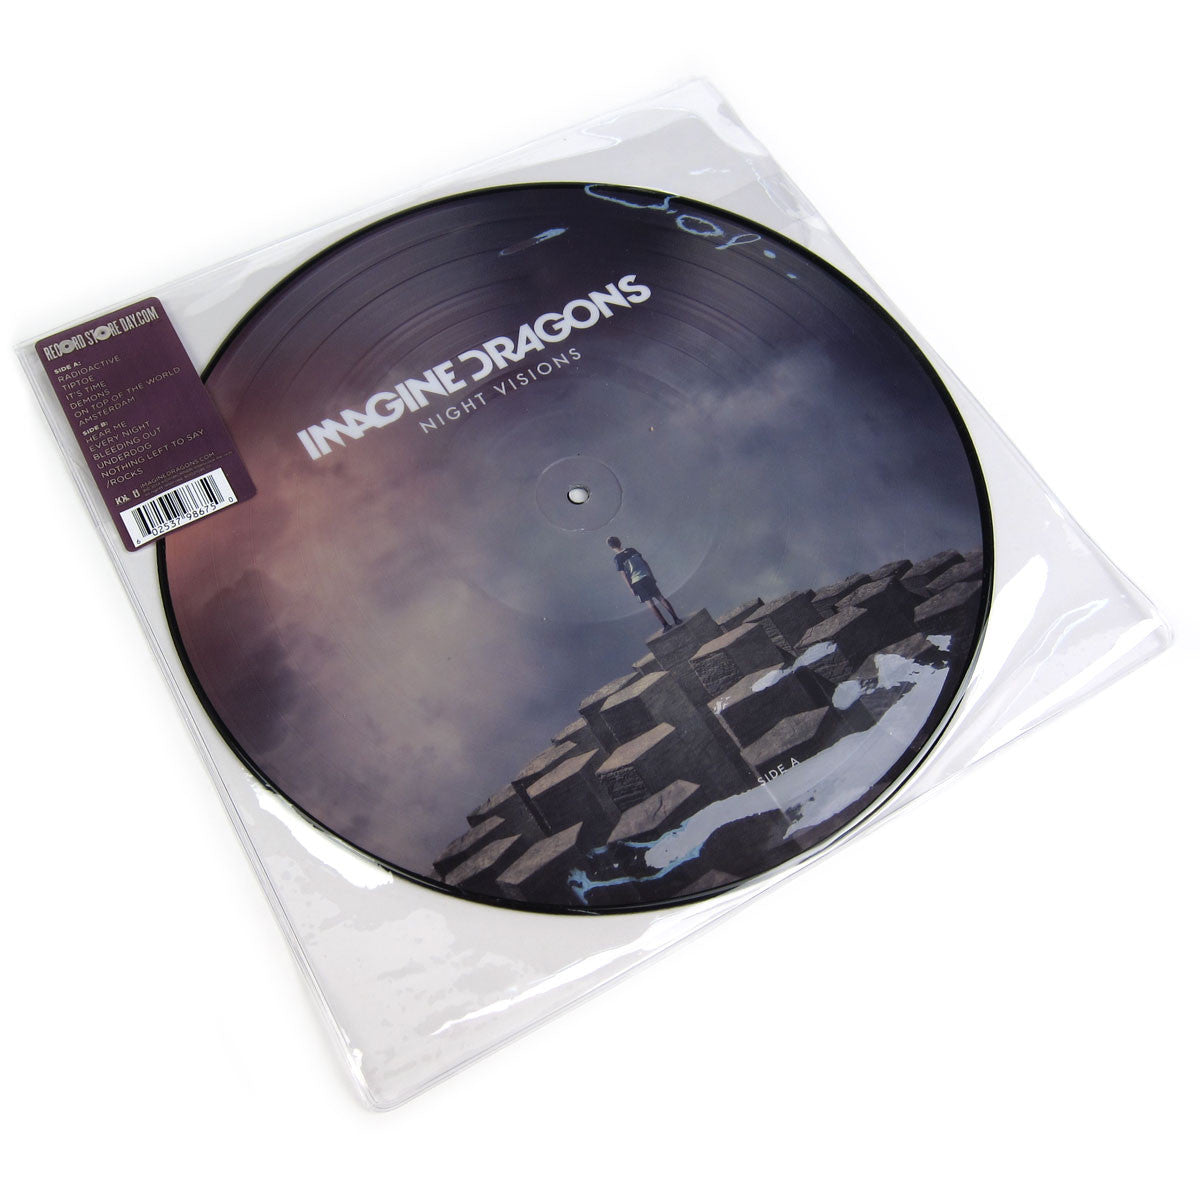 Imagine Dragons : Night Visions (Picture Disc) Vinyl LP (Record Store Day)